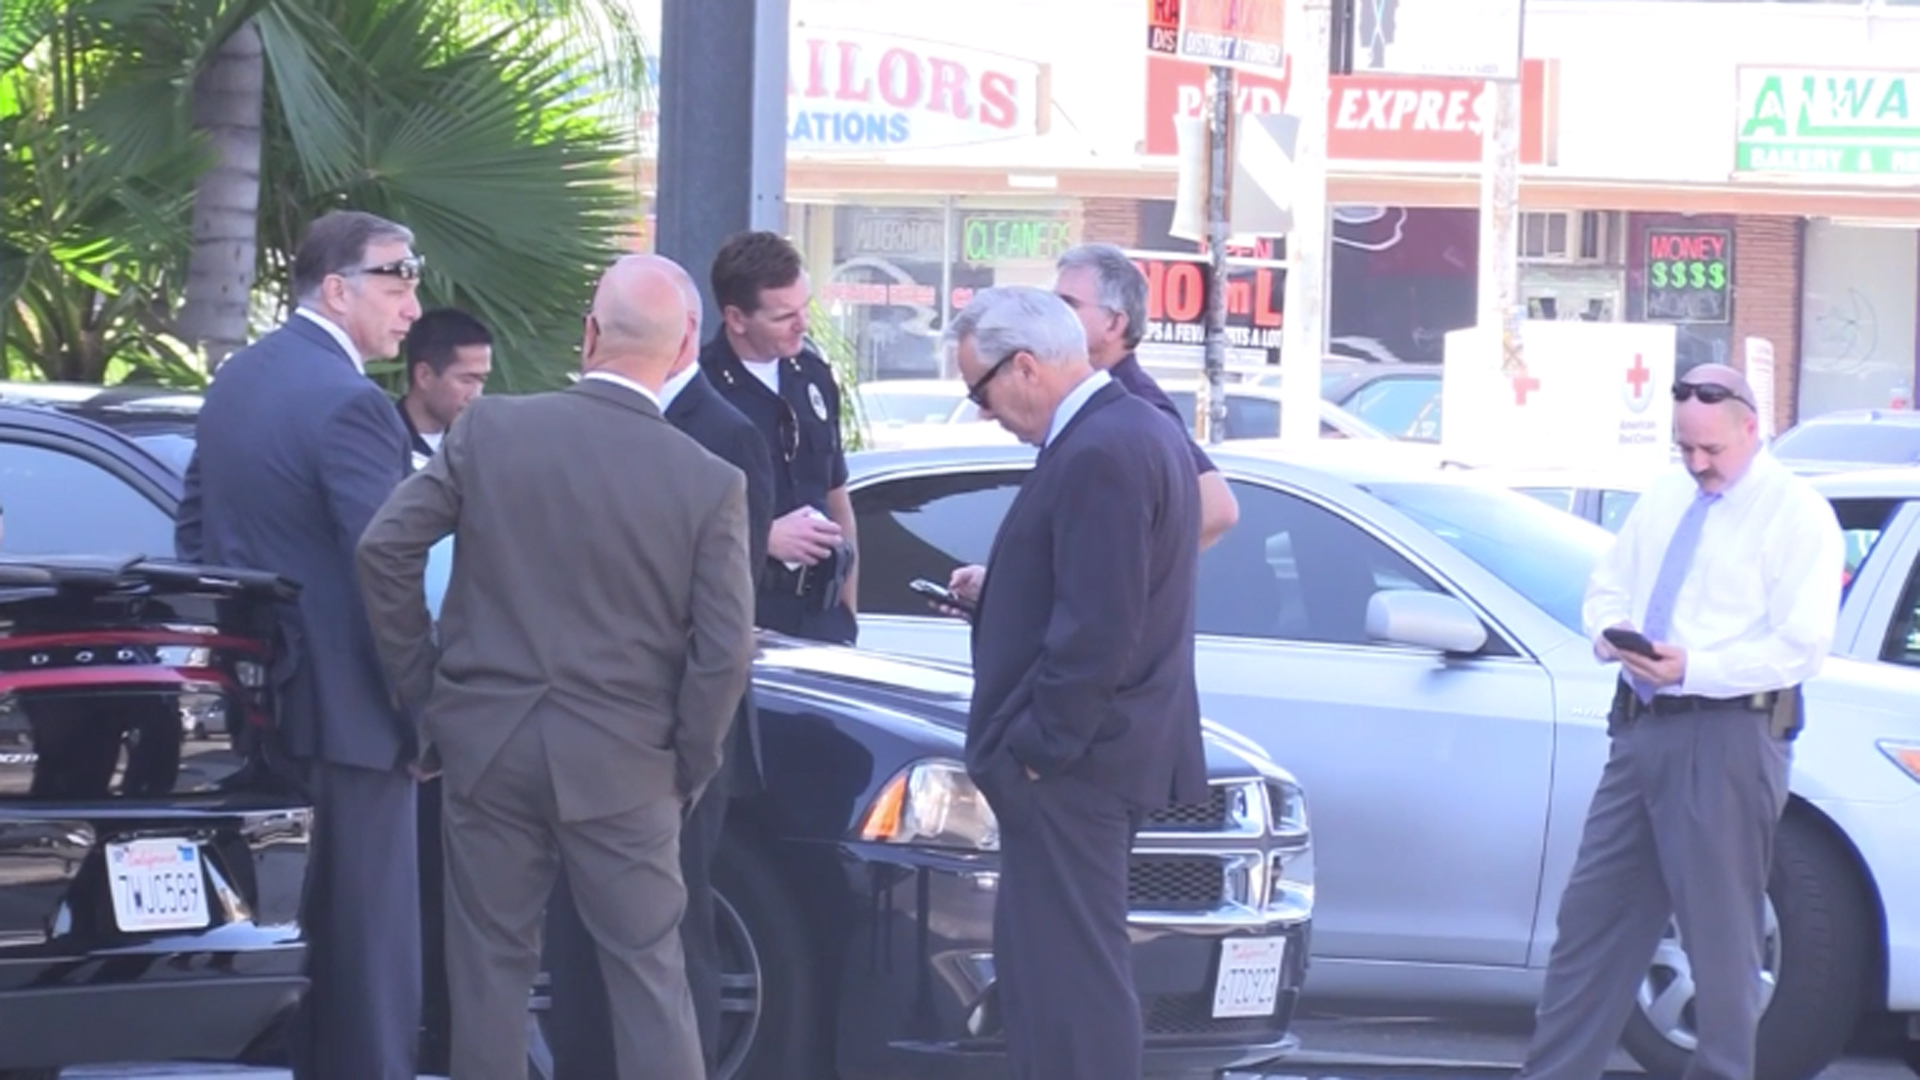 Investigators are seen in Anaheim after an incident left an assault suspect going into full cardiac arrest and two police officers seriously injured on Oct. 27, 2018. (Credit: OC Hawk)